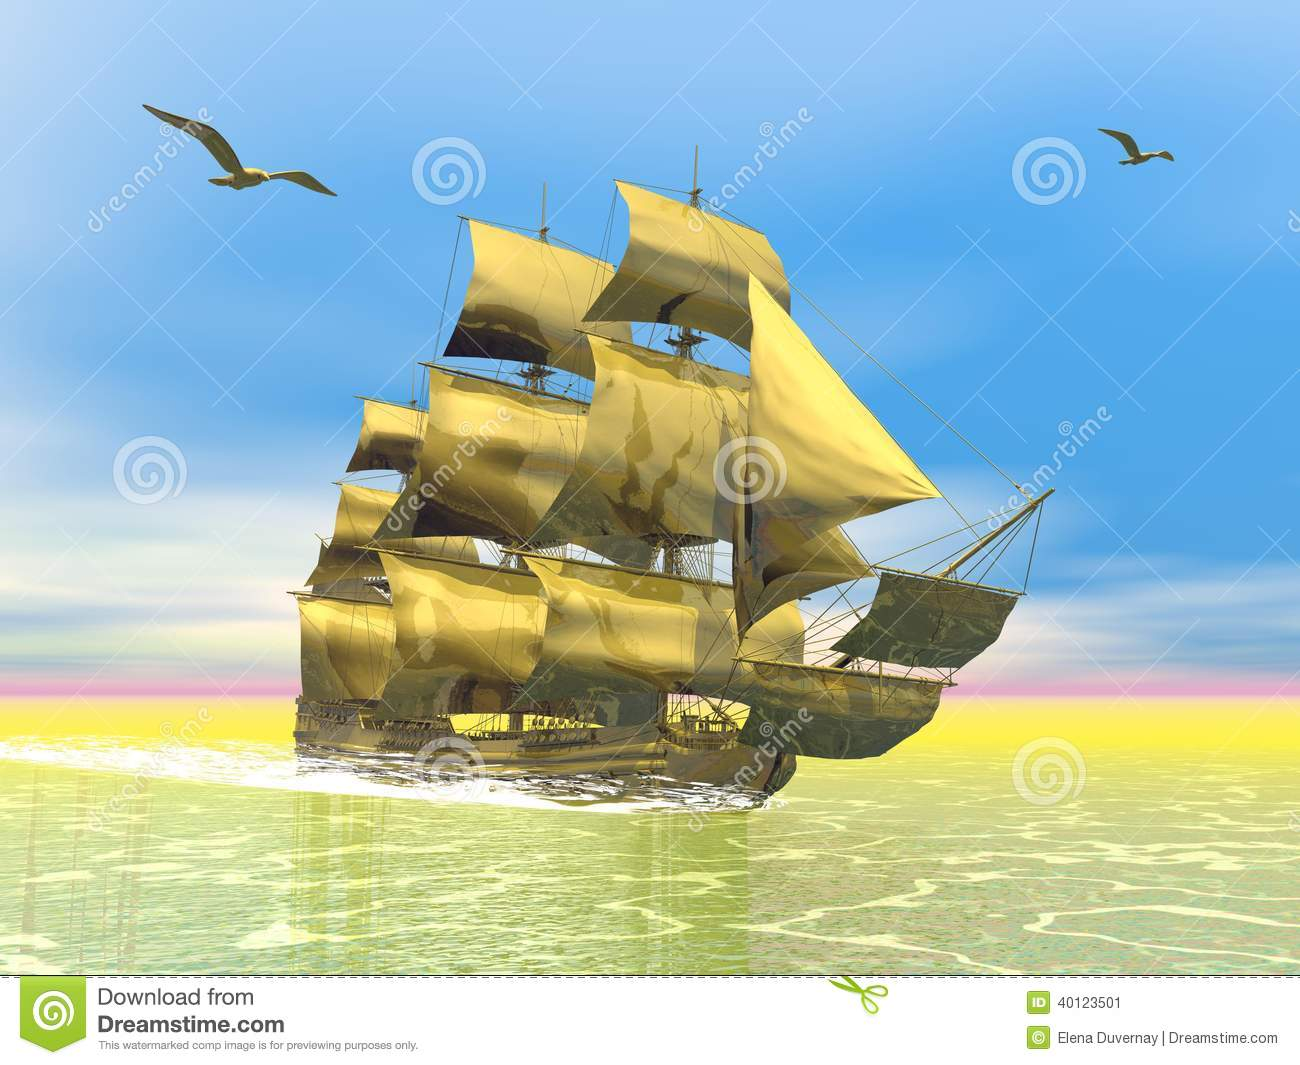 Cargo Ship Vector  2605 Free Downloads  Vecteezy